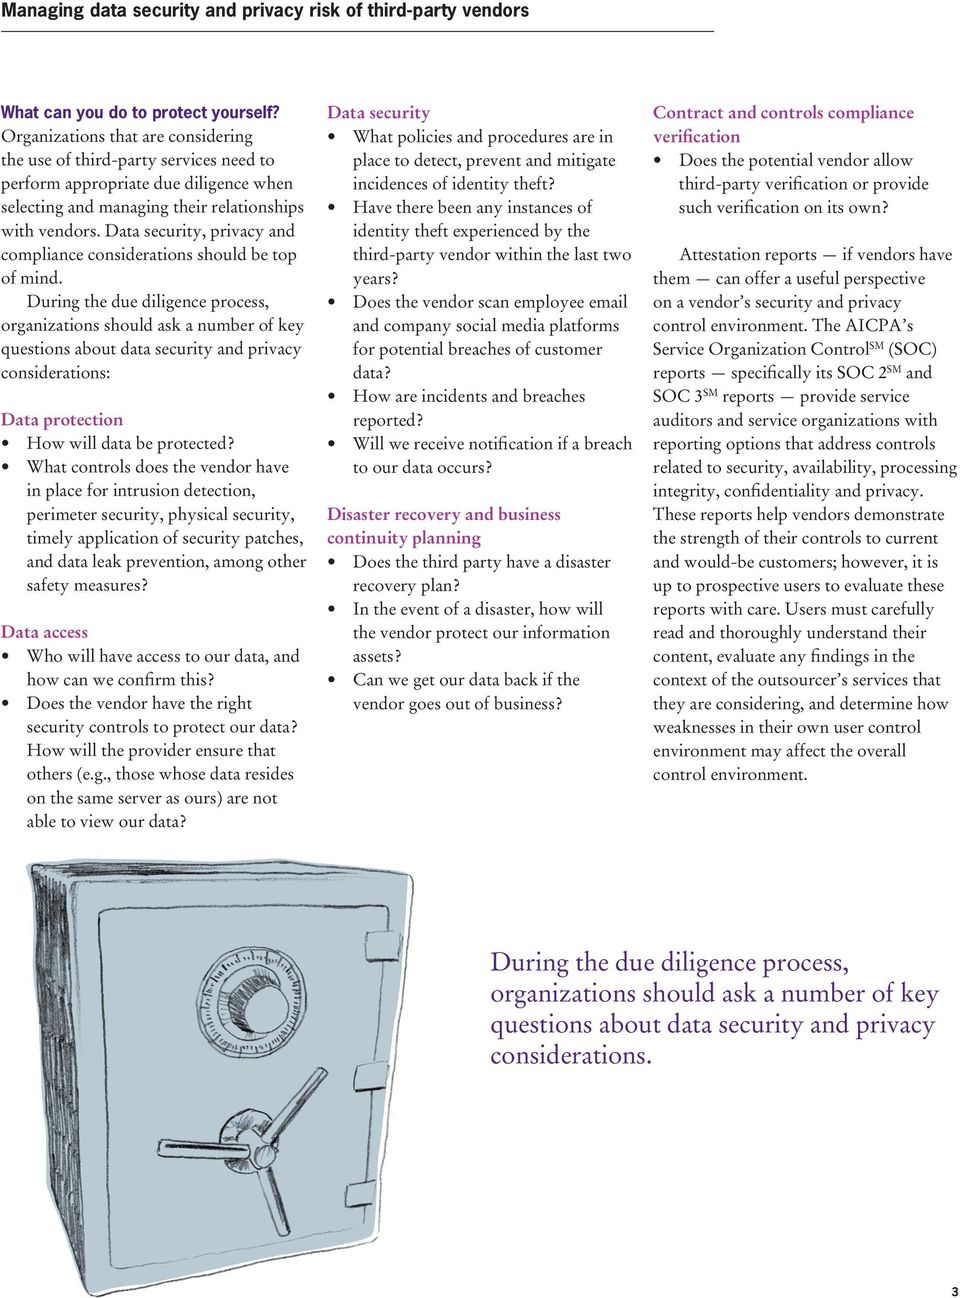 Data security, privacy and compliance considerations should be top of mind.